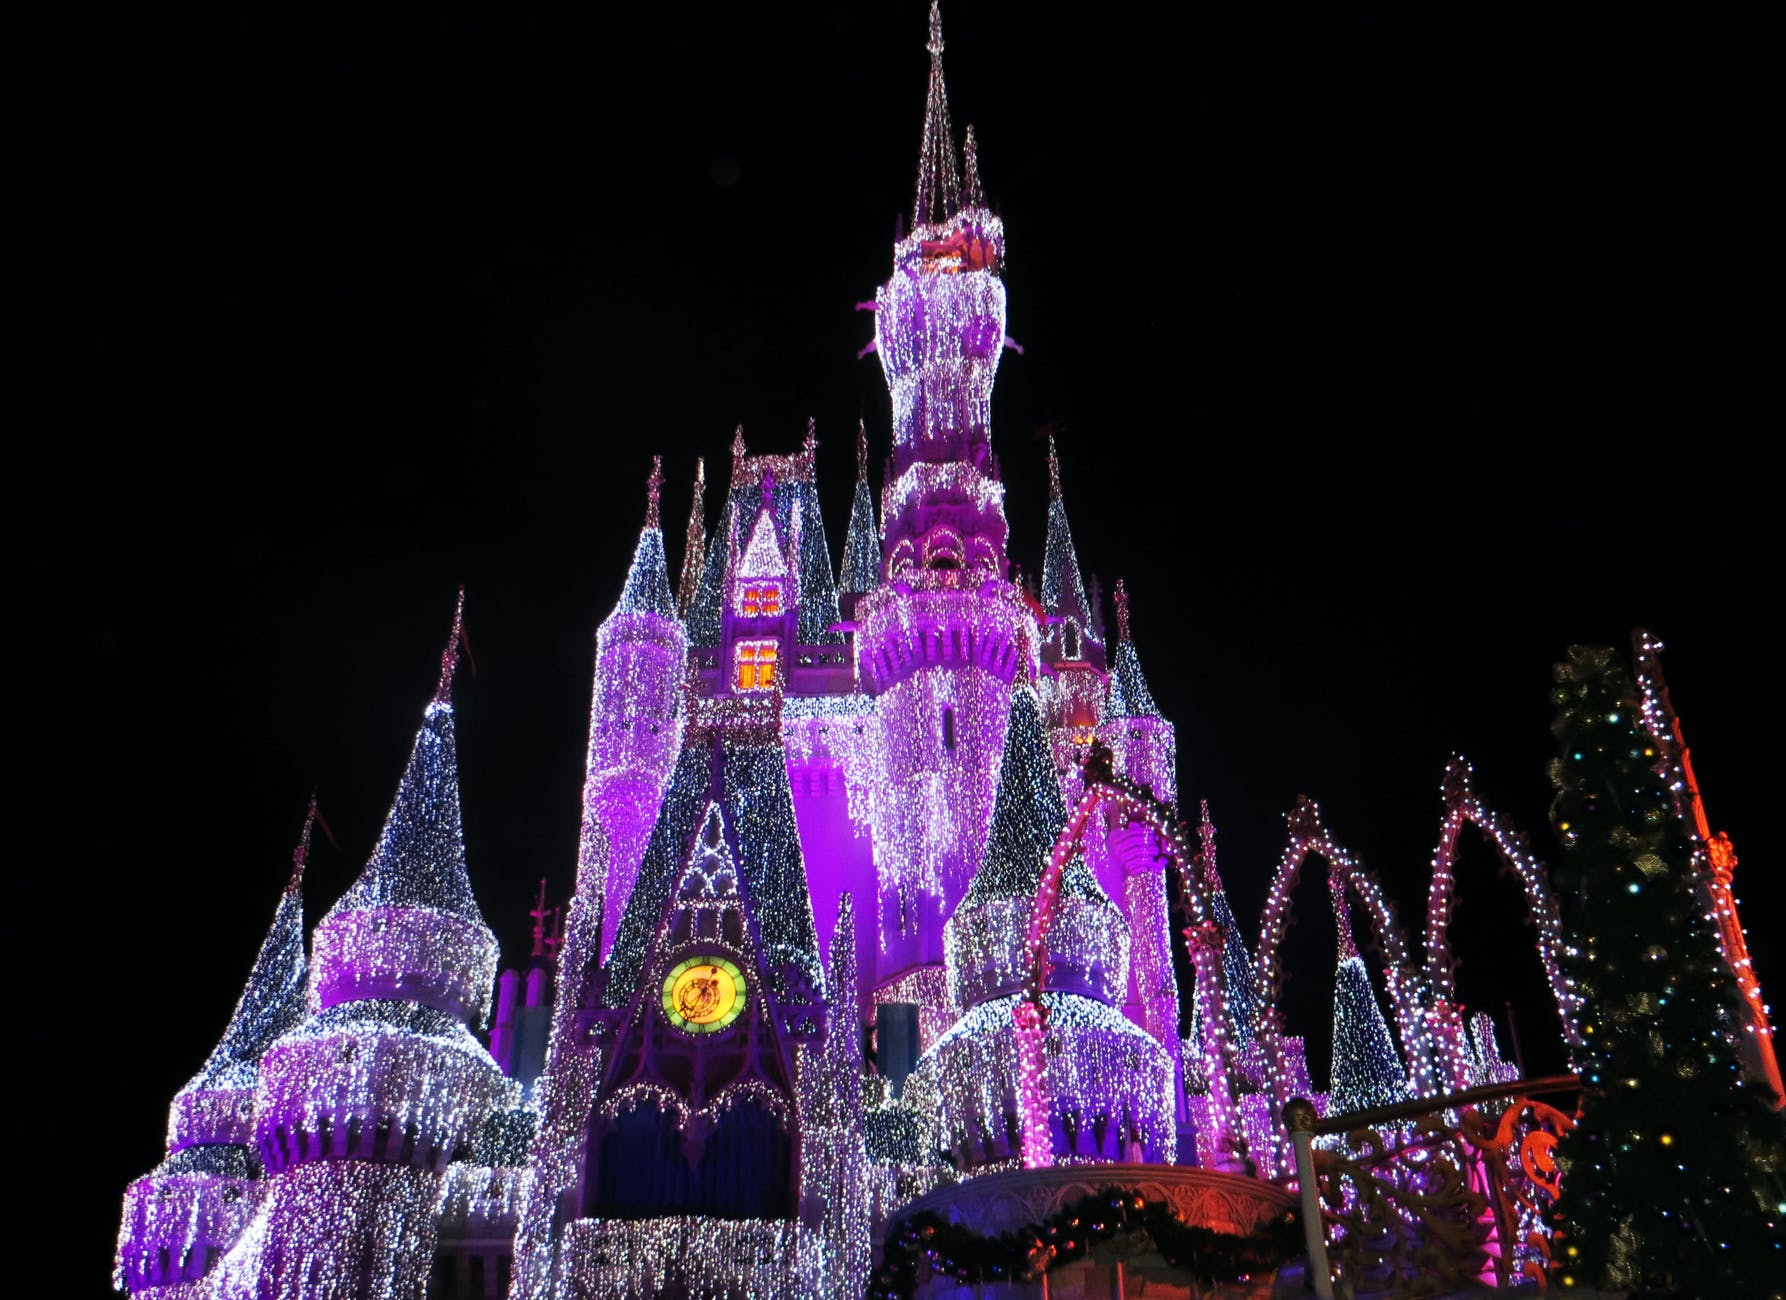 lighted Disney castle at night